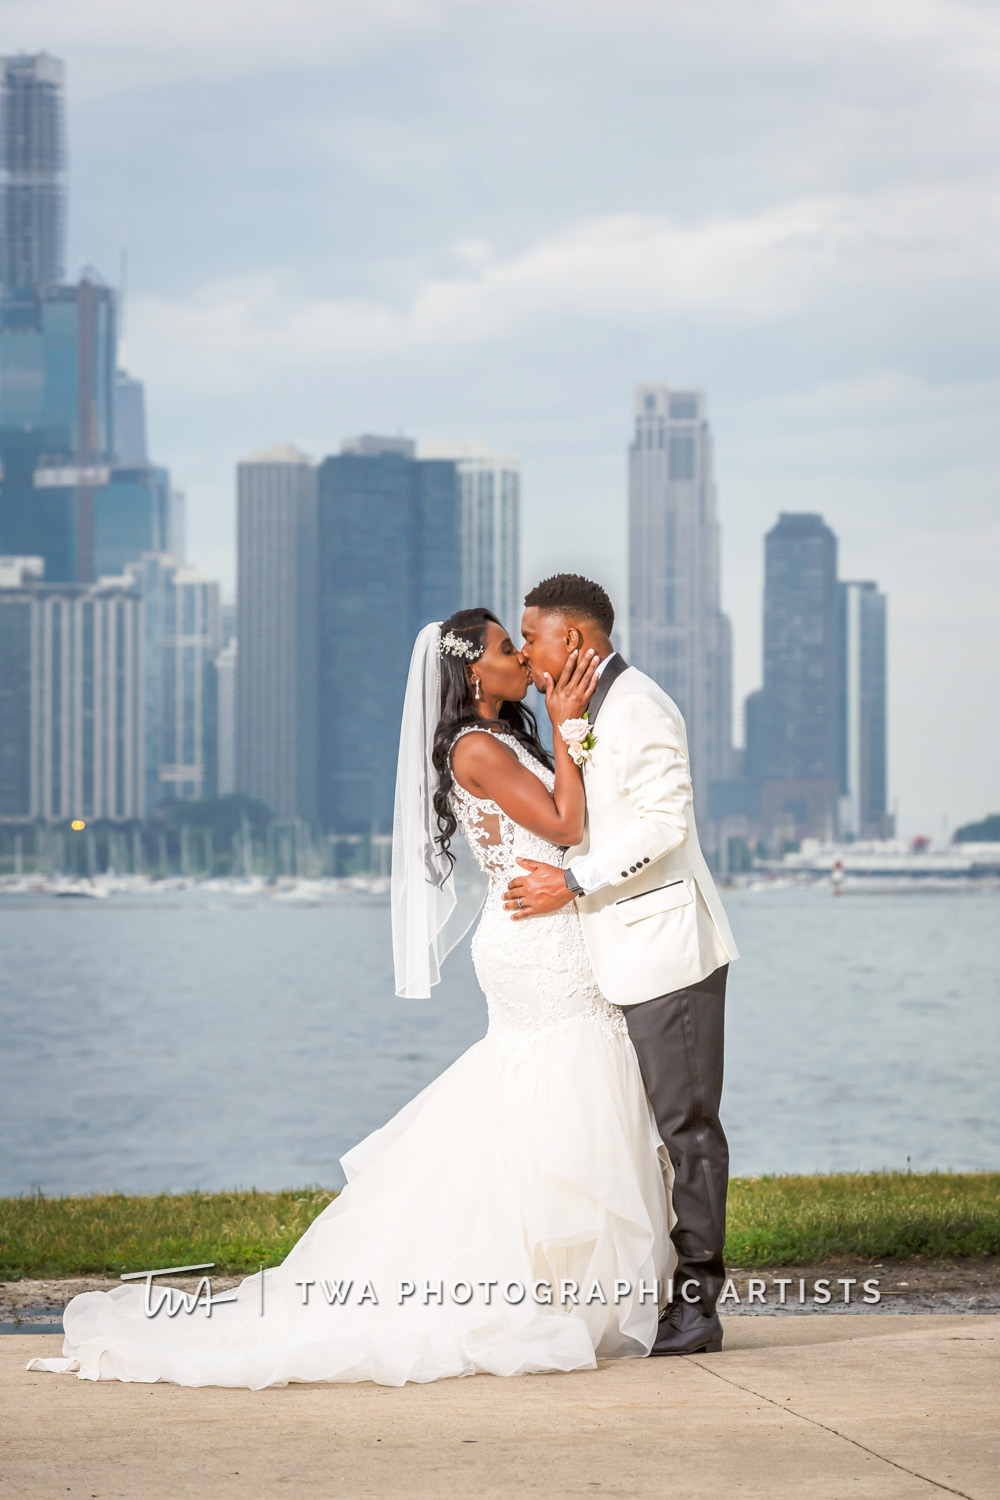 Marah & Karim's Royal Sonesta Chicago Riverfront Wedding